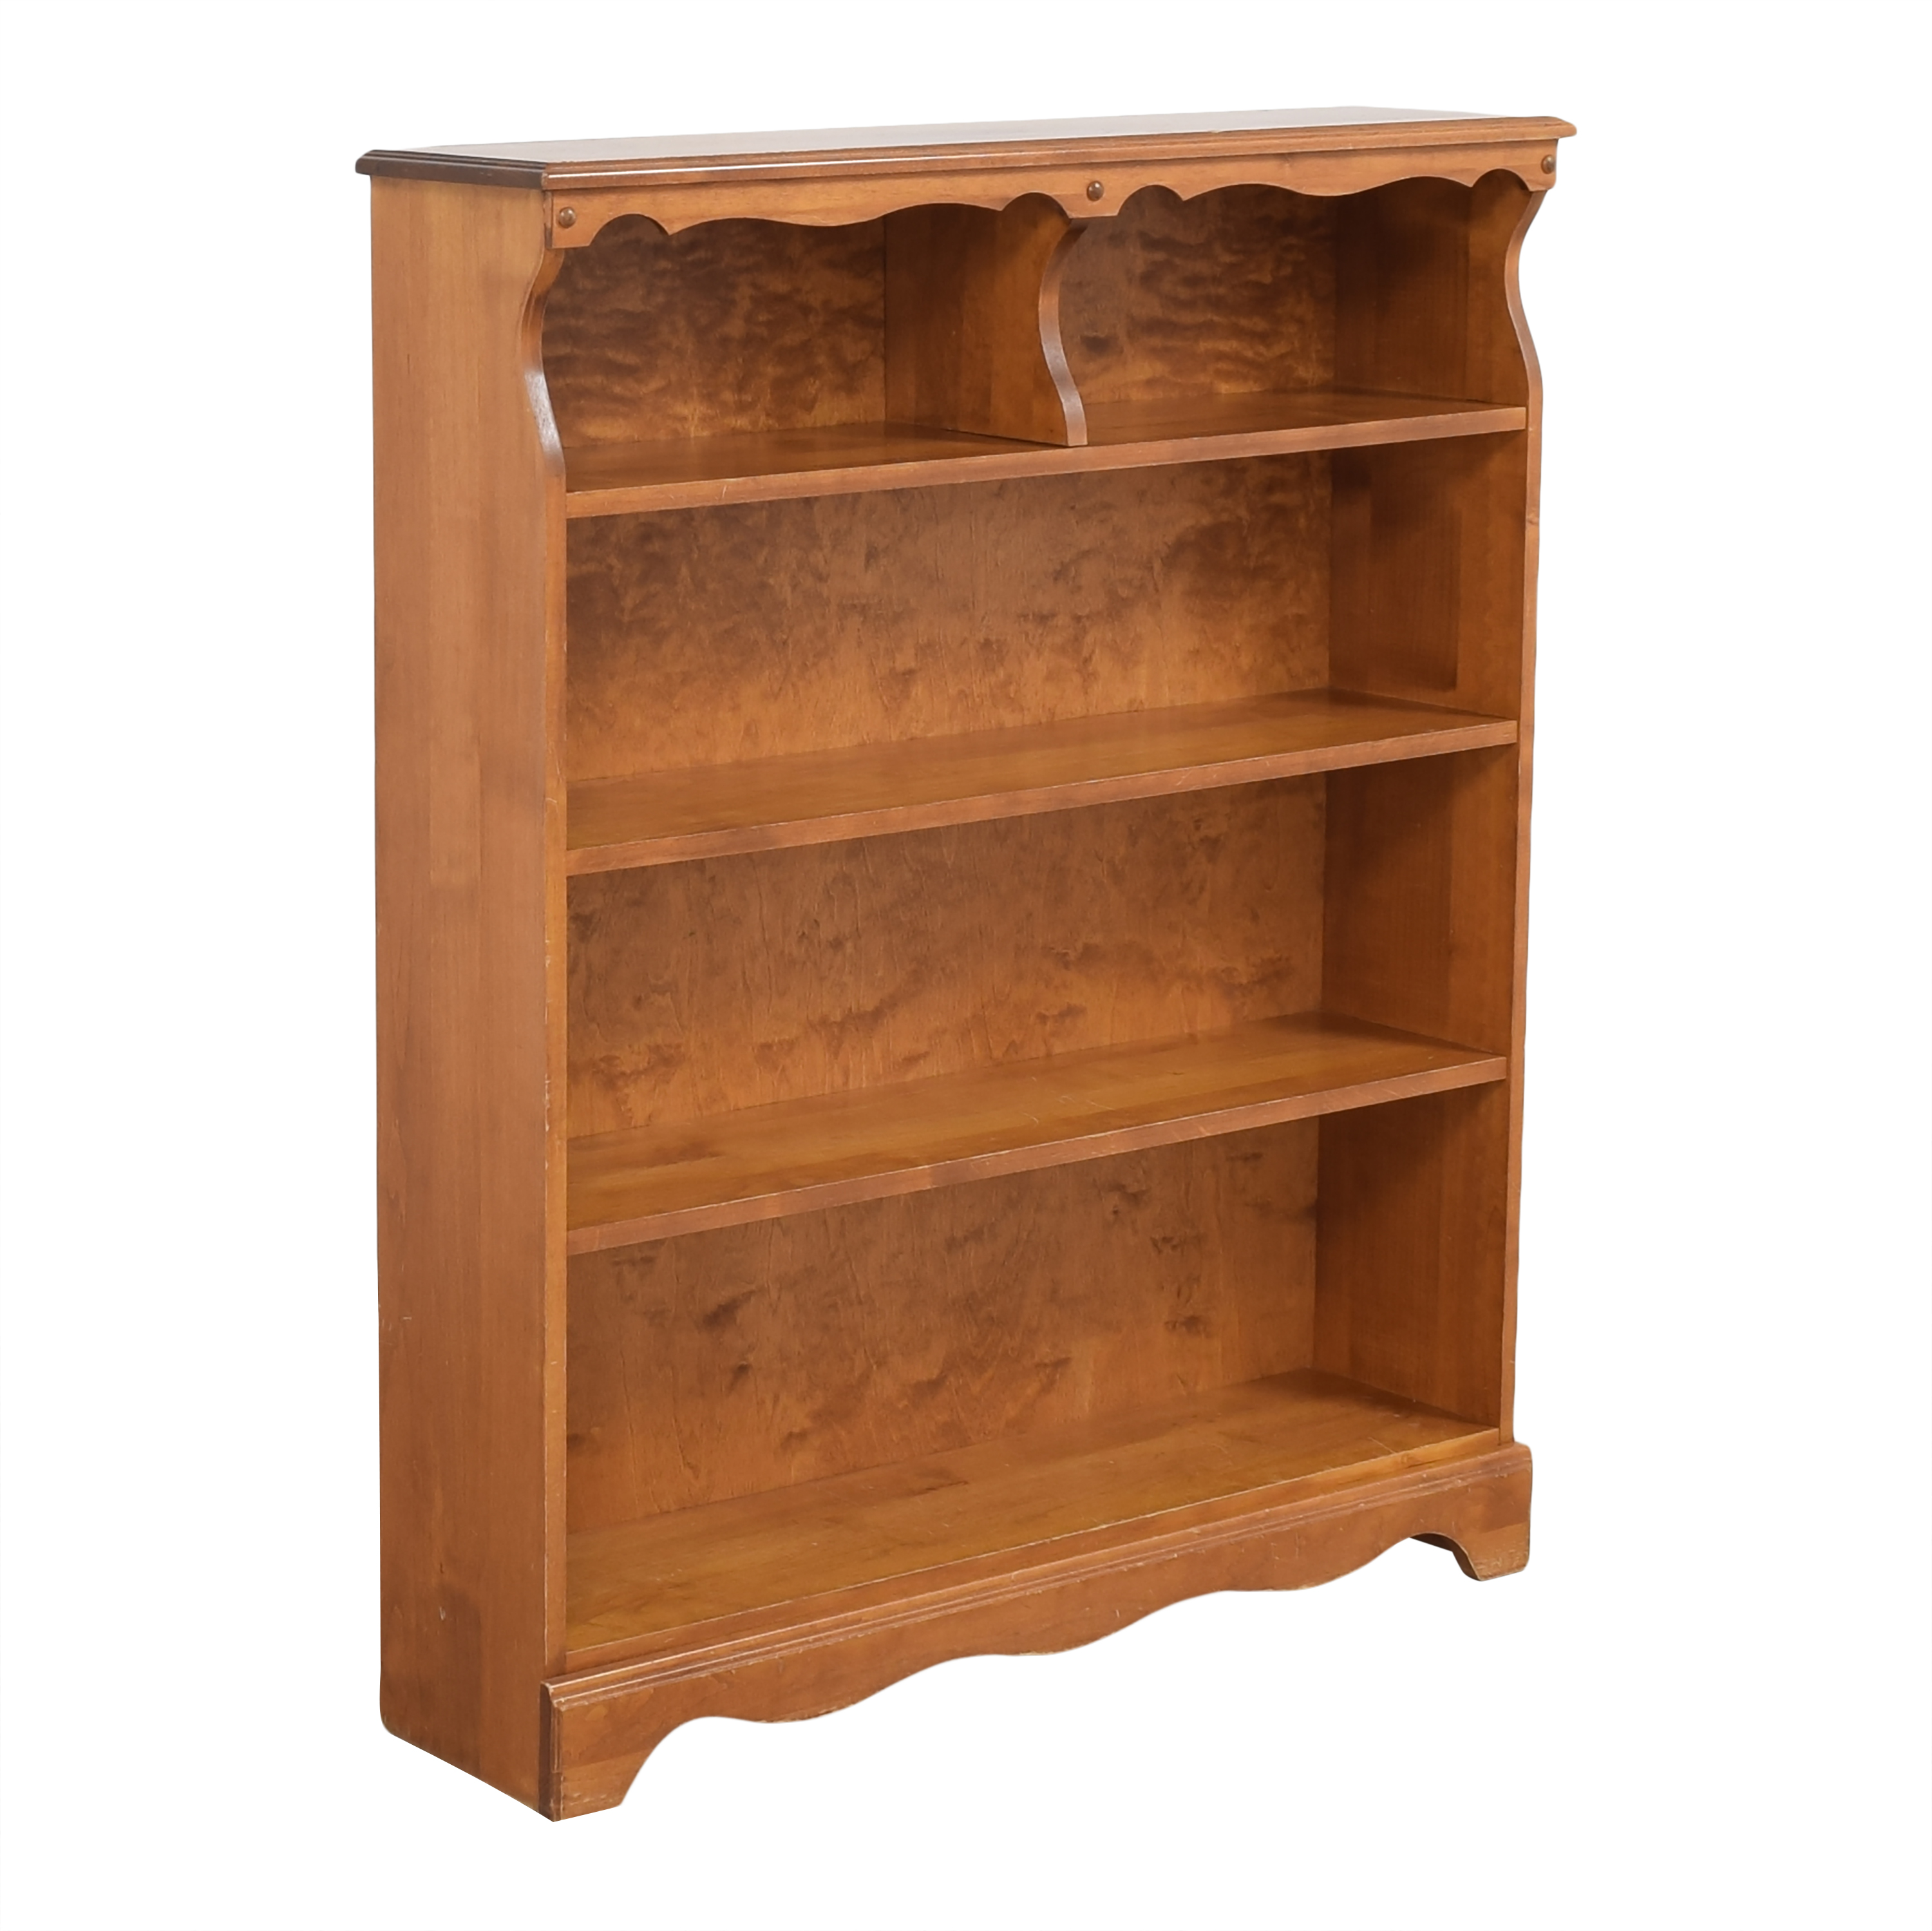 Amish Outlet Store Amish Outlet Store Bookcase pa